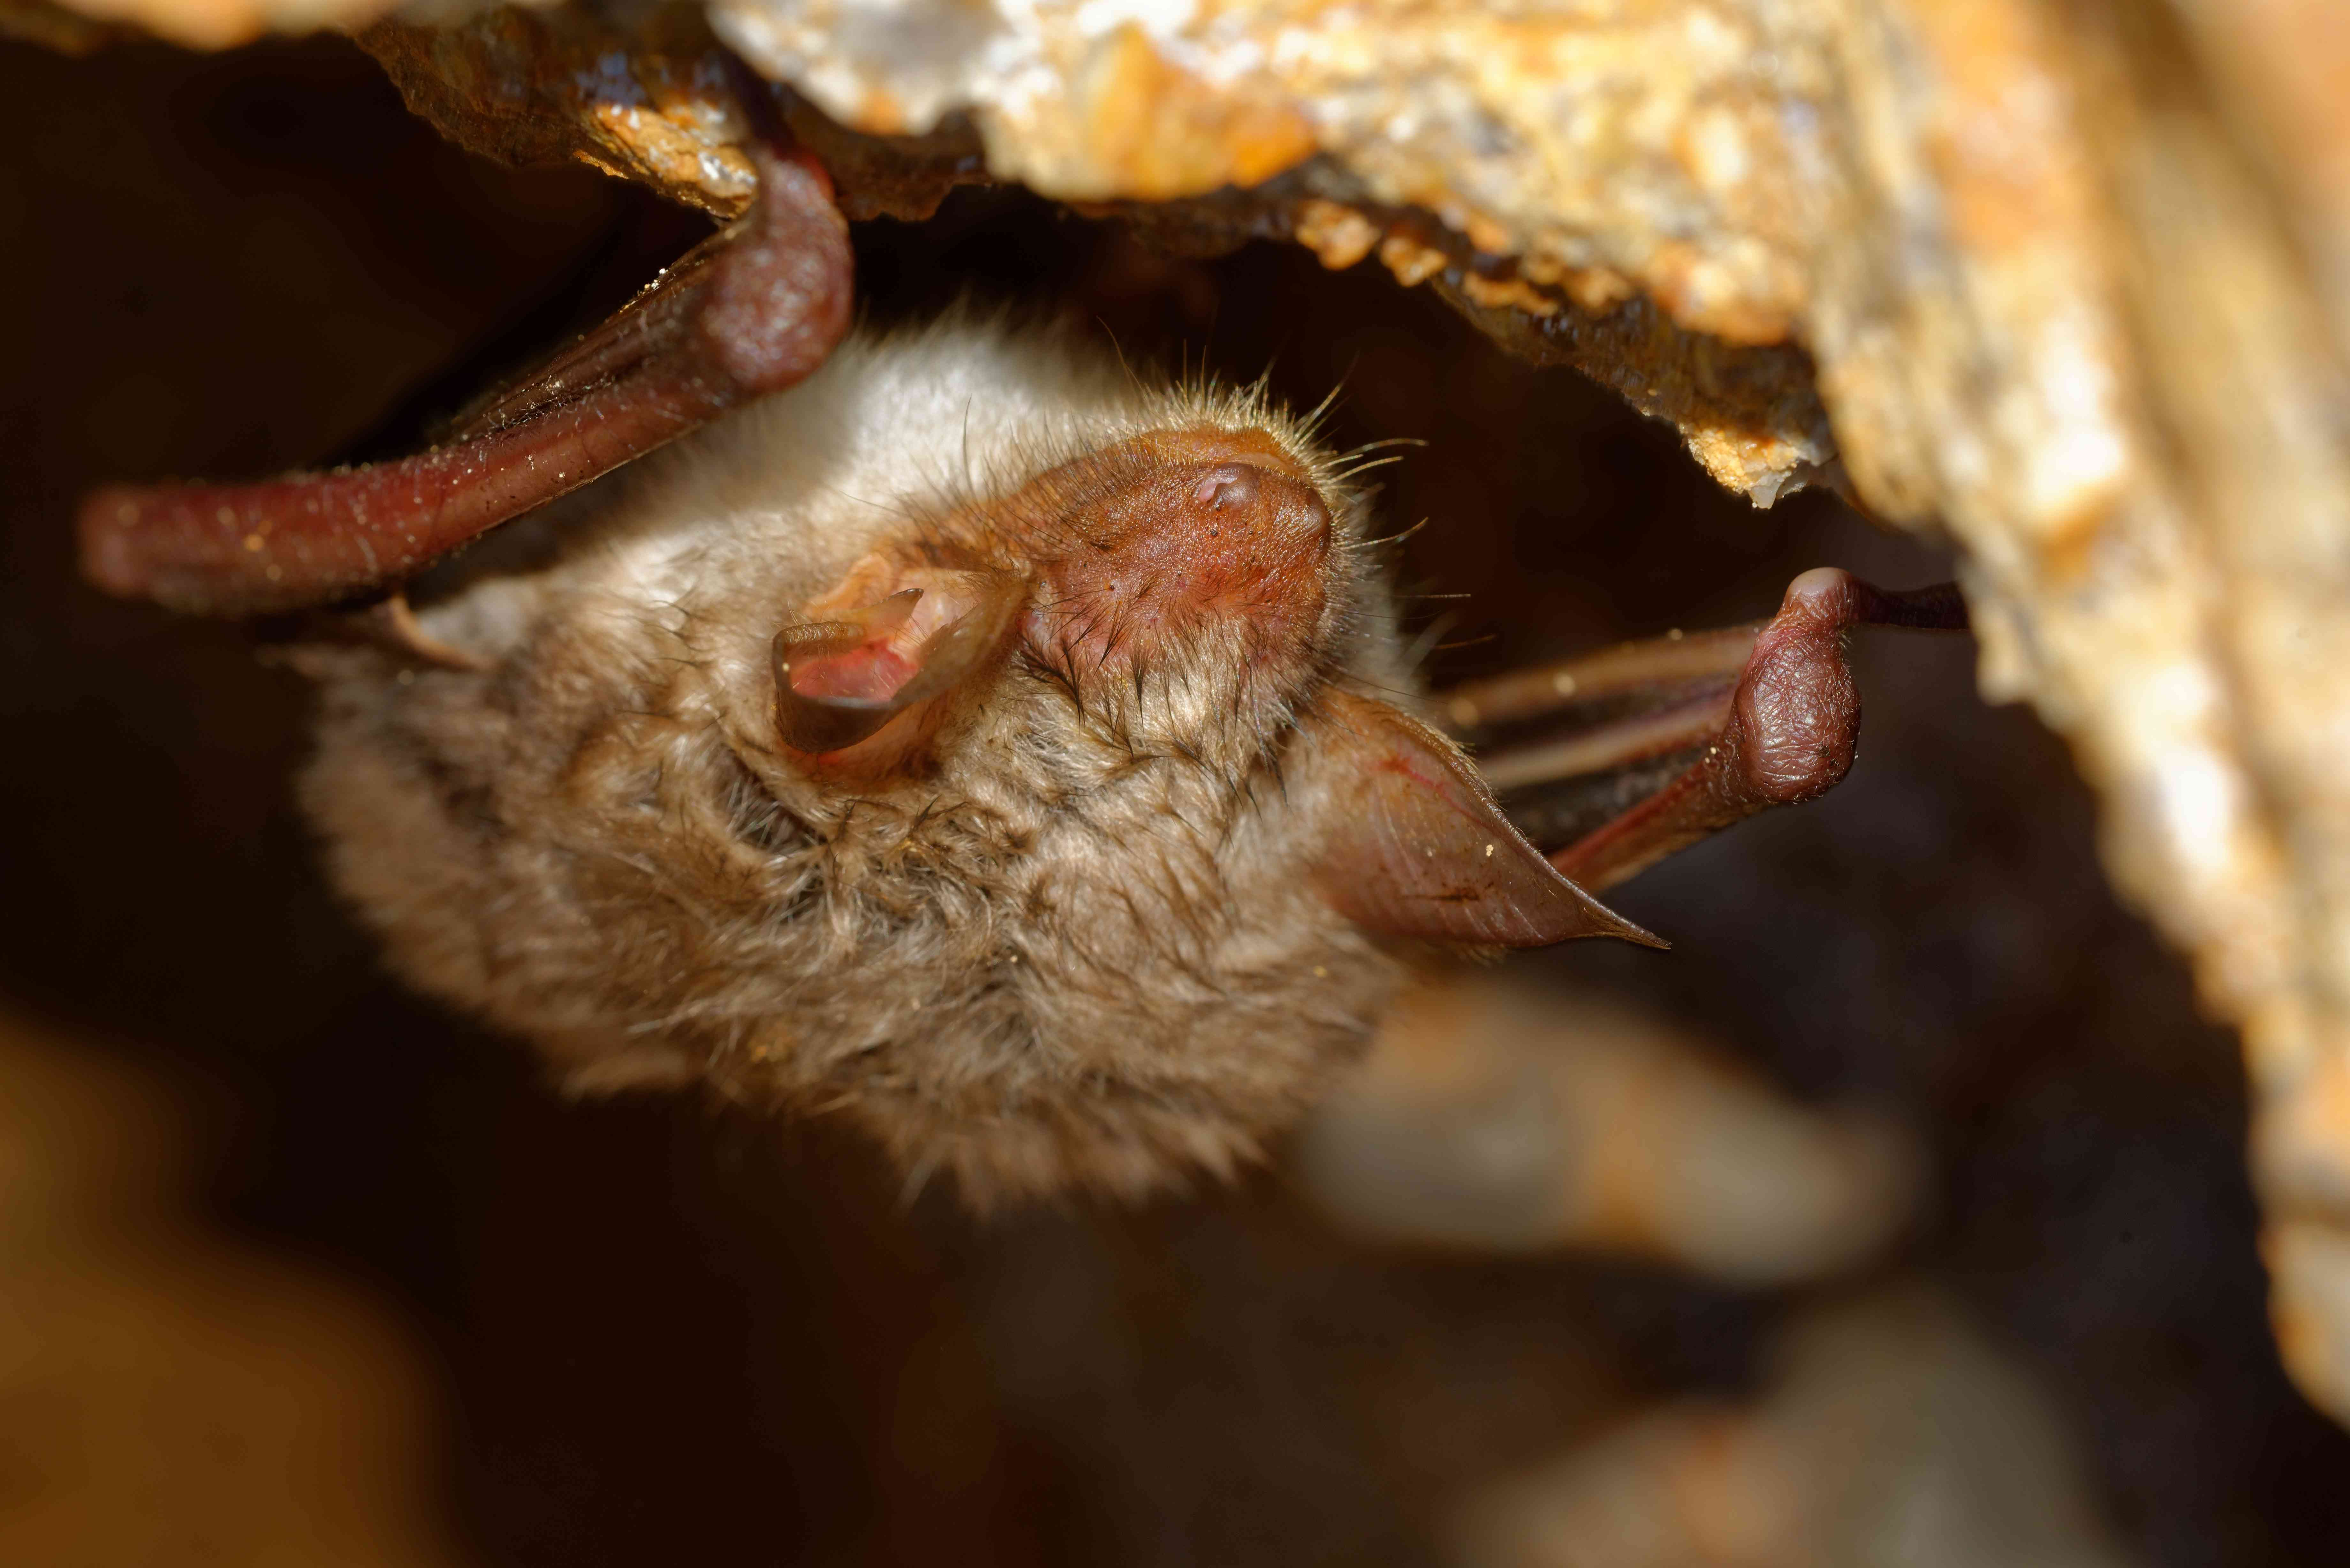 The greater mouse-eared bat, which can live up to 22 years in the wild